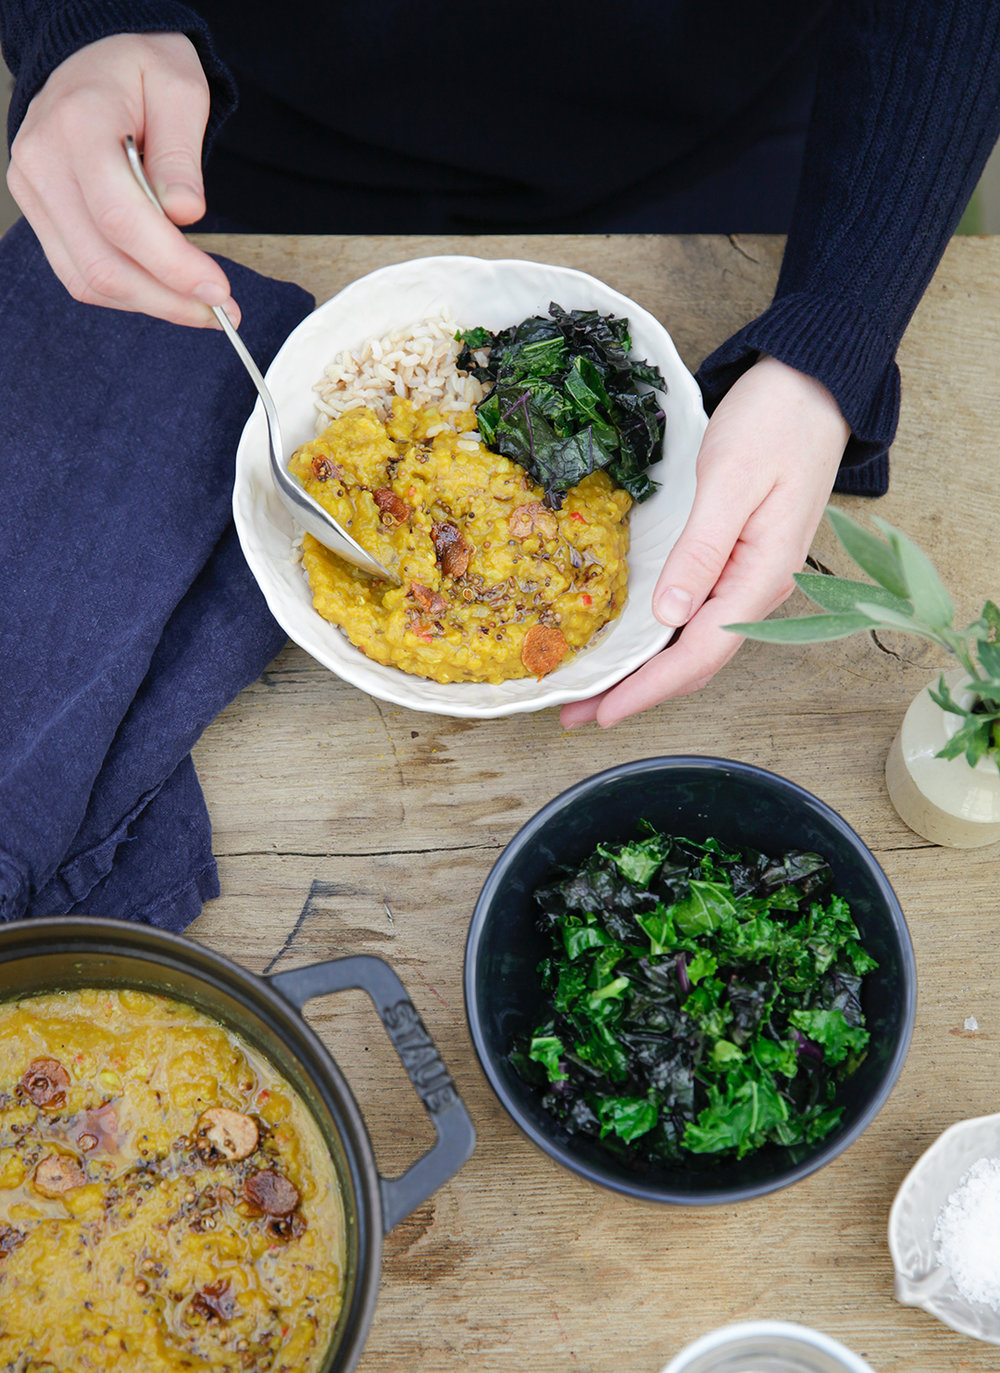 What we are eating this month - Right now we are loving this recipe from the Daylesford team. A warming dhal with butternut squash and tumeric is perfect for chilly winter nights. (serves 2-3)